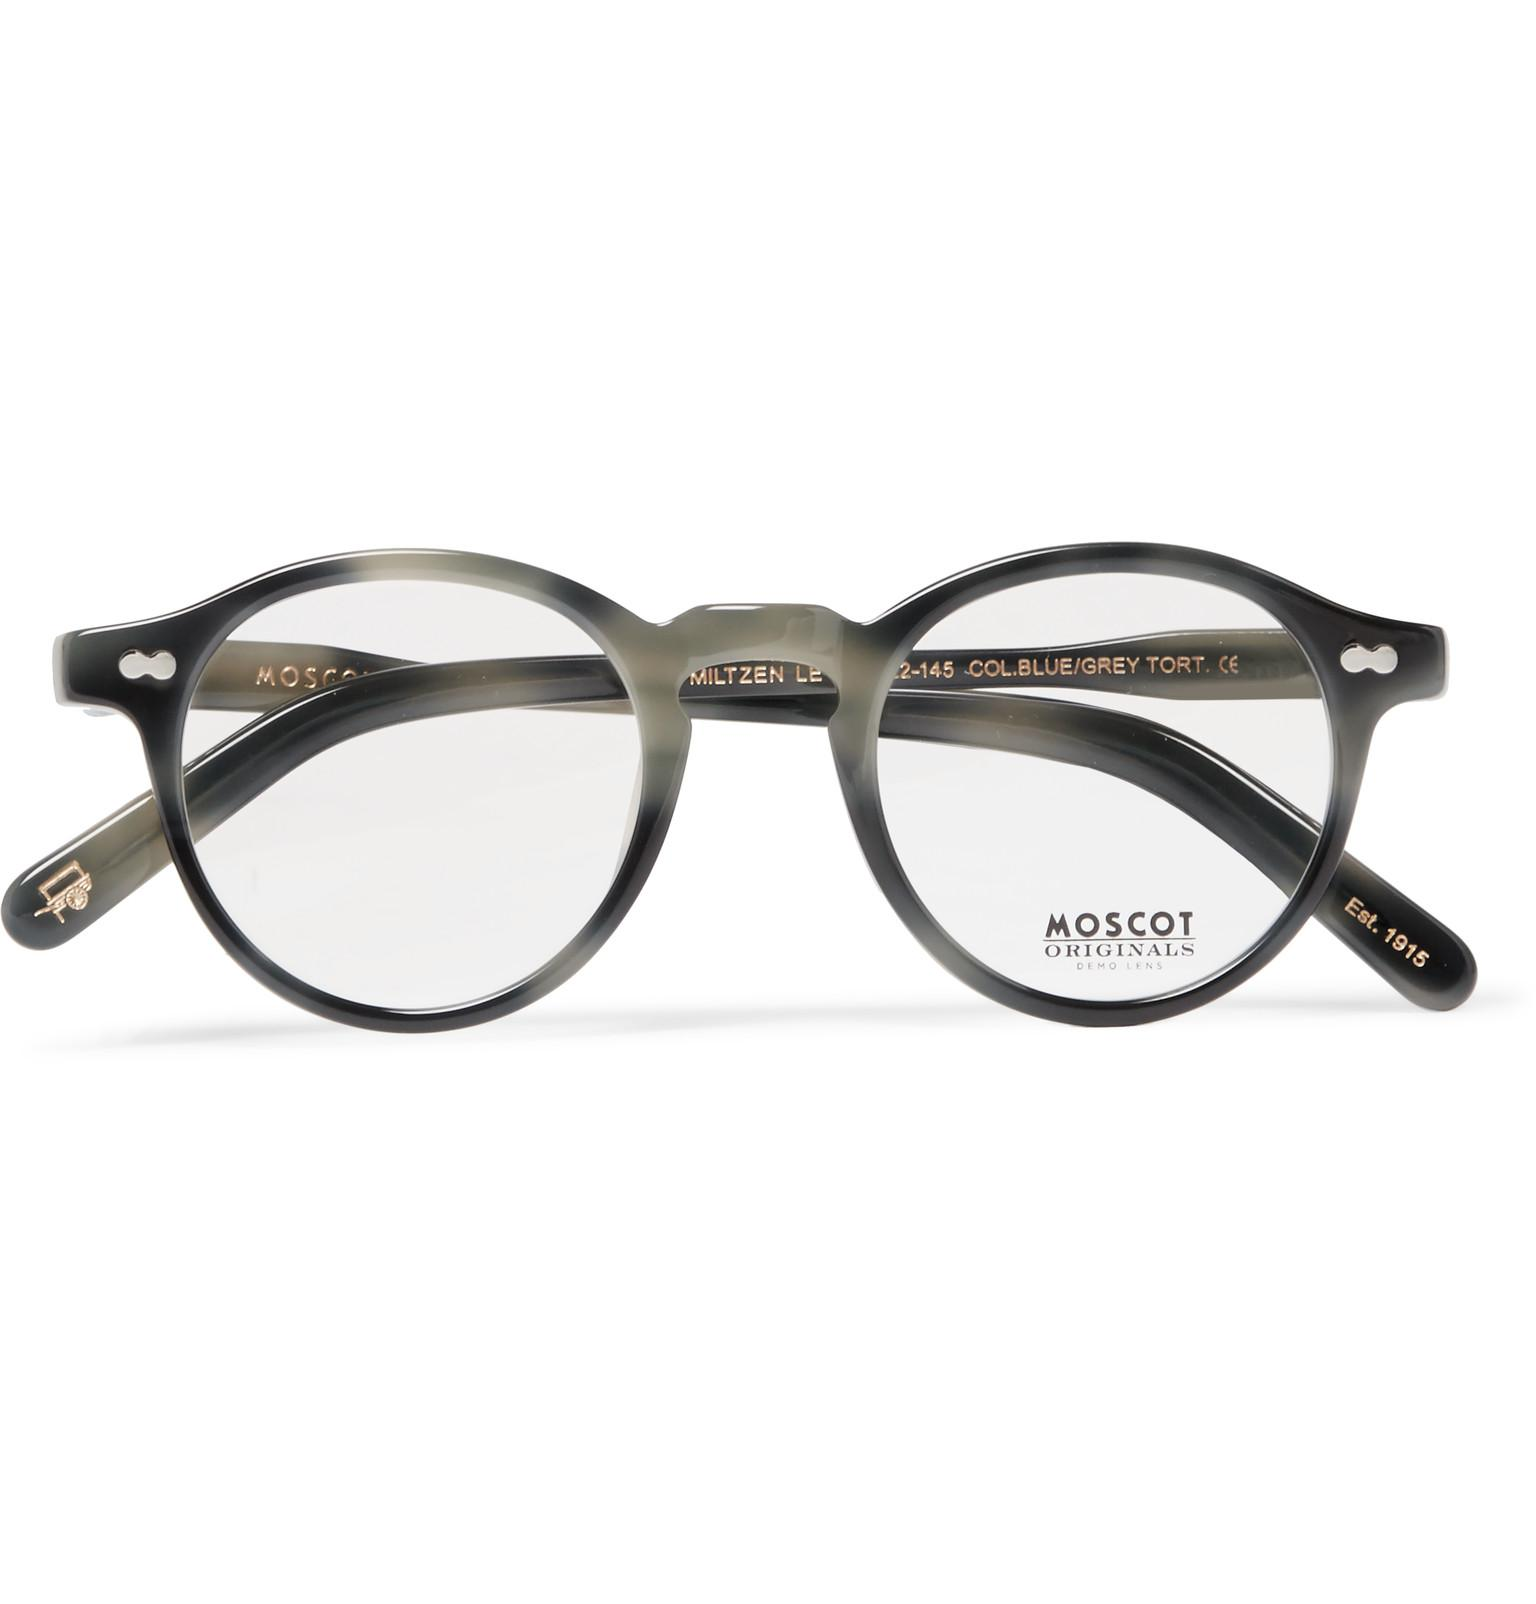 9796f7e00a Lyst - Moscot Miltzen Round-frame Acetate Optical Glasses in Gray ...